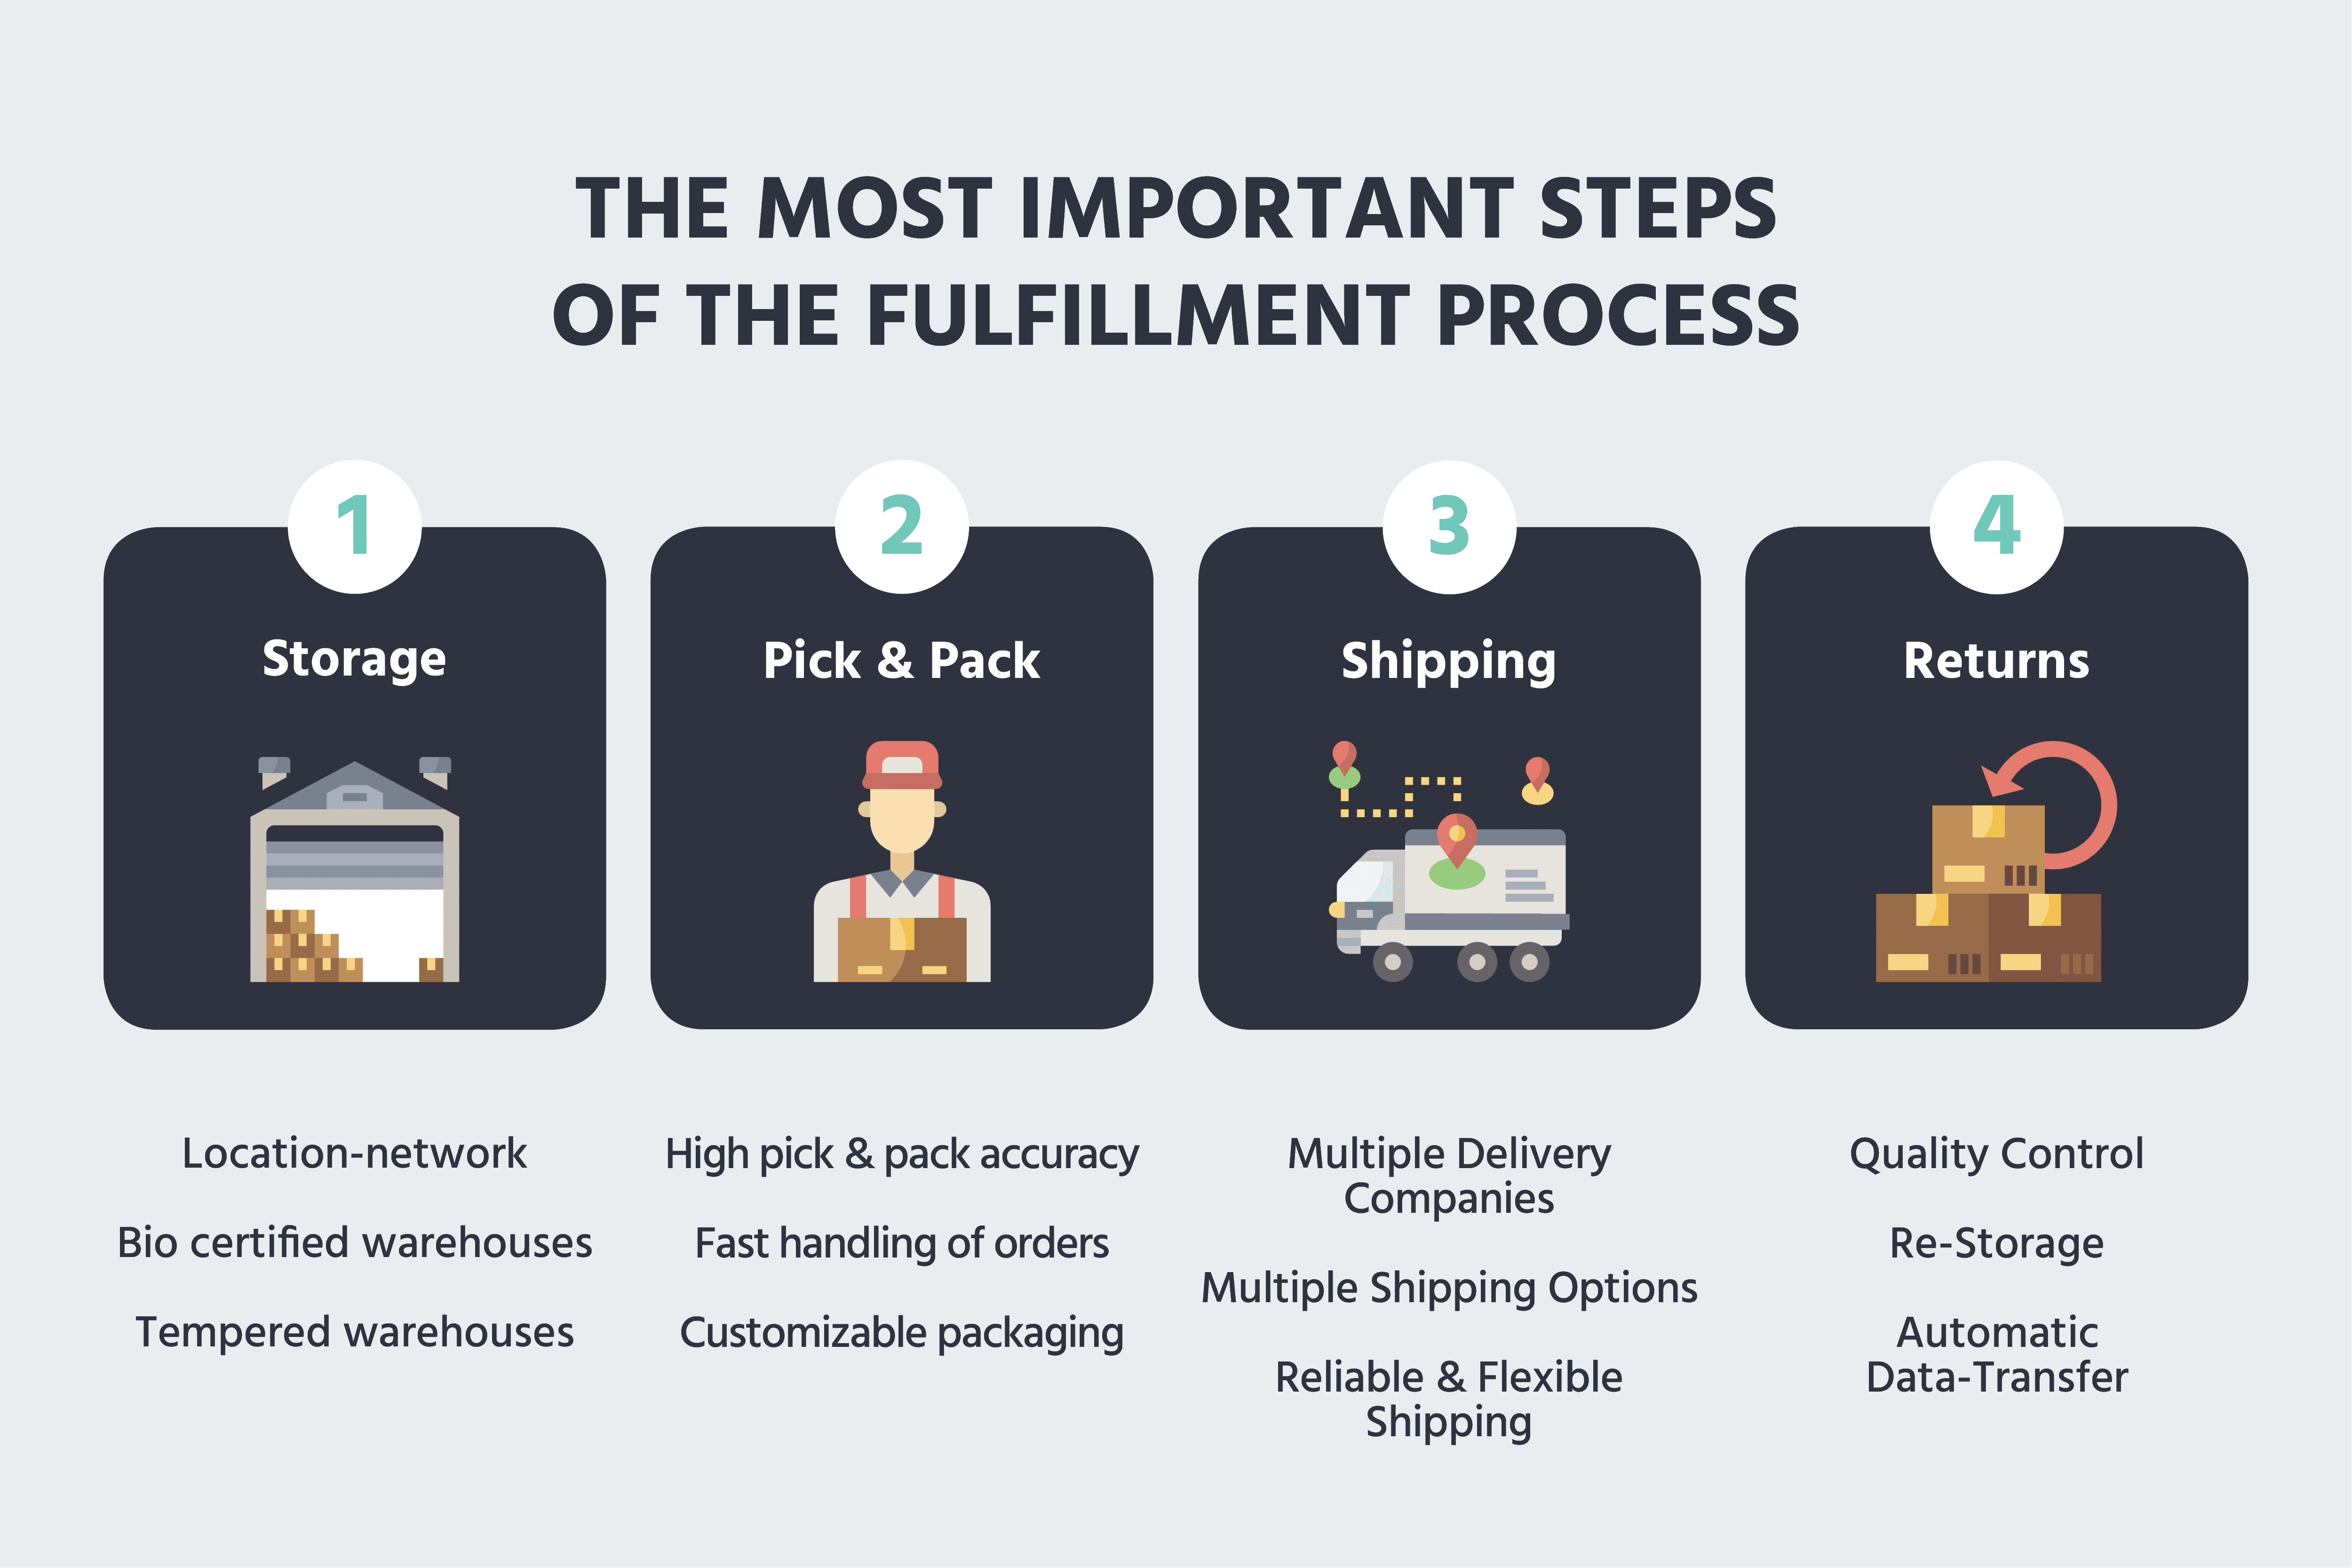 Fulfillment Process - The most important steps